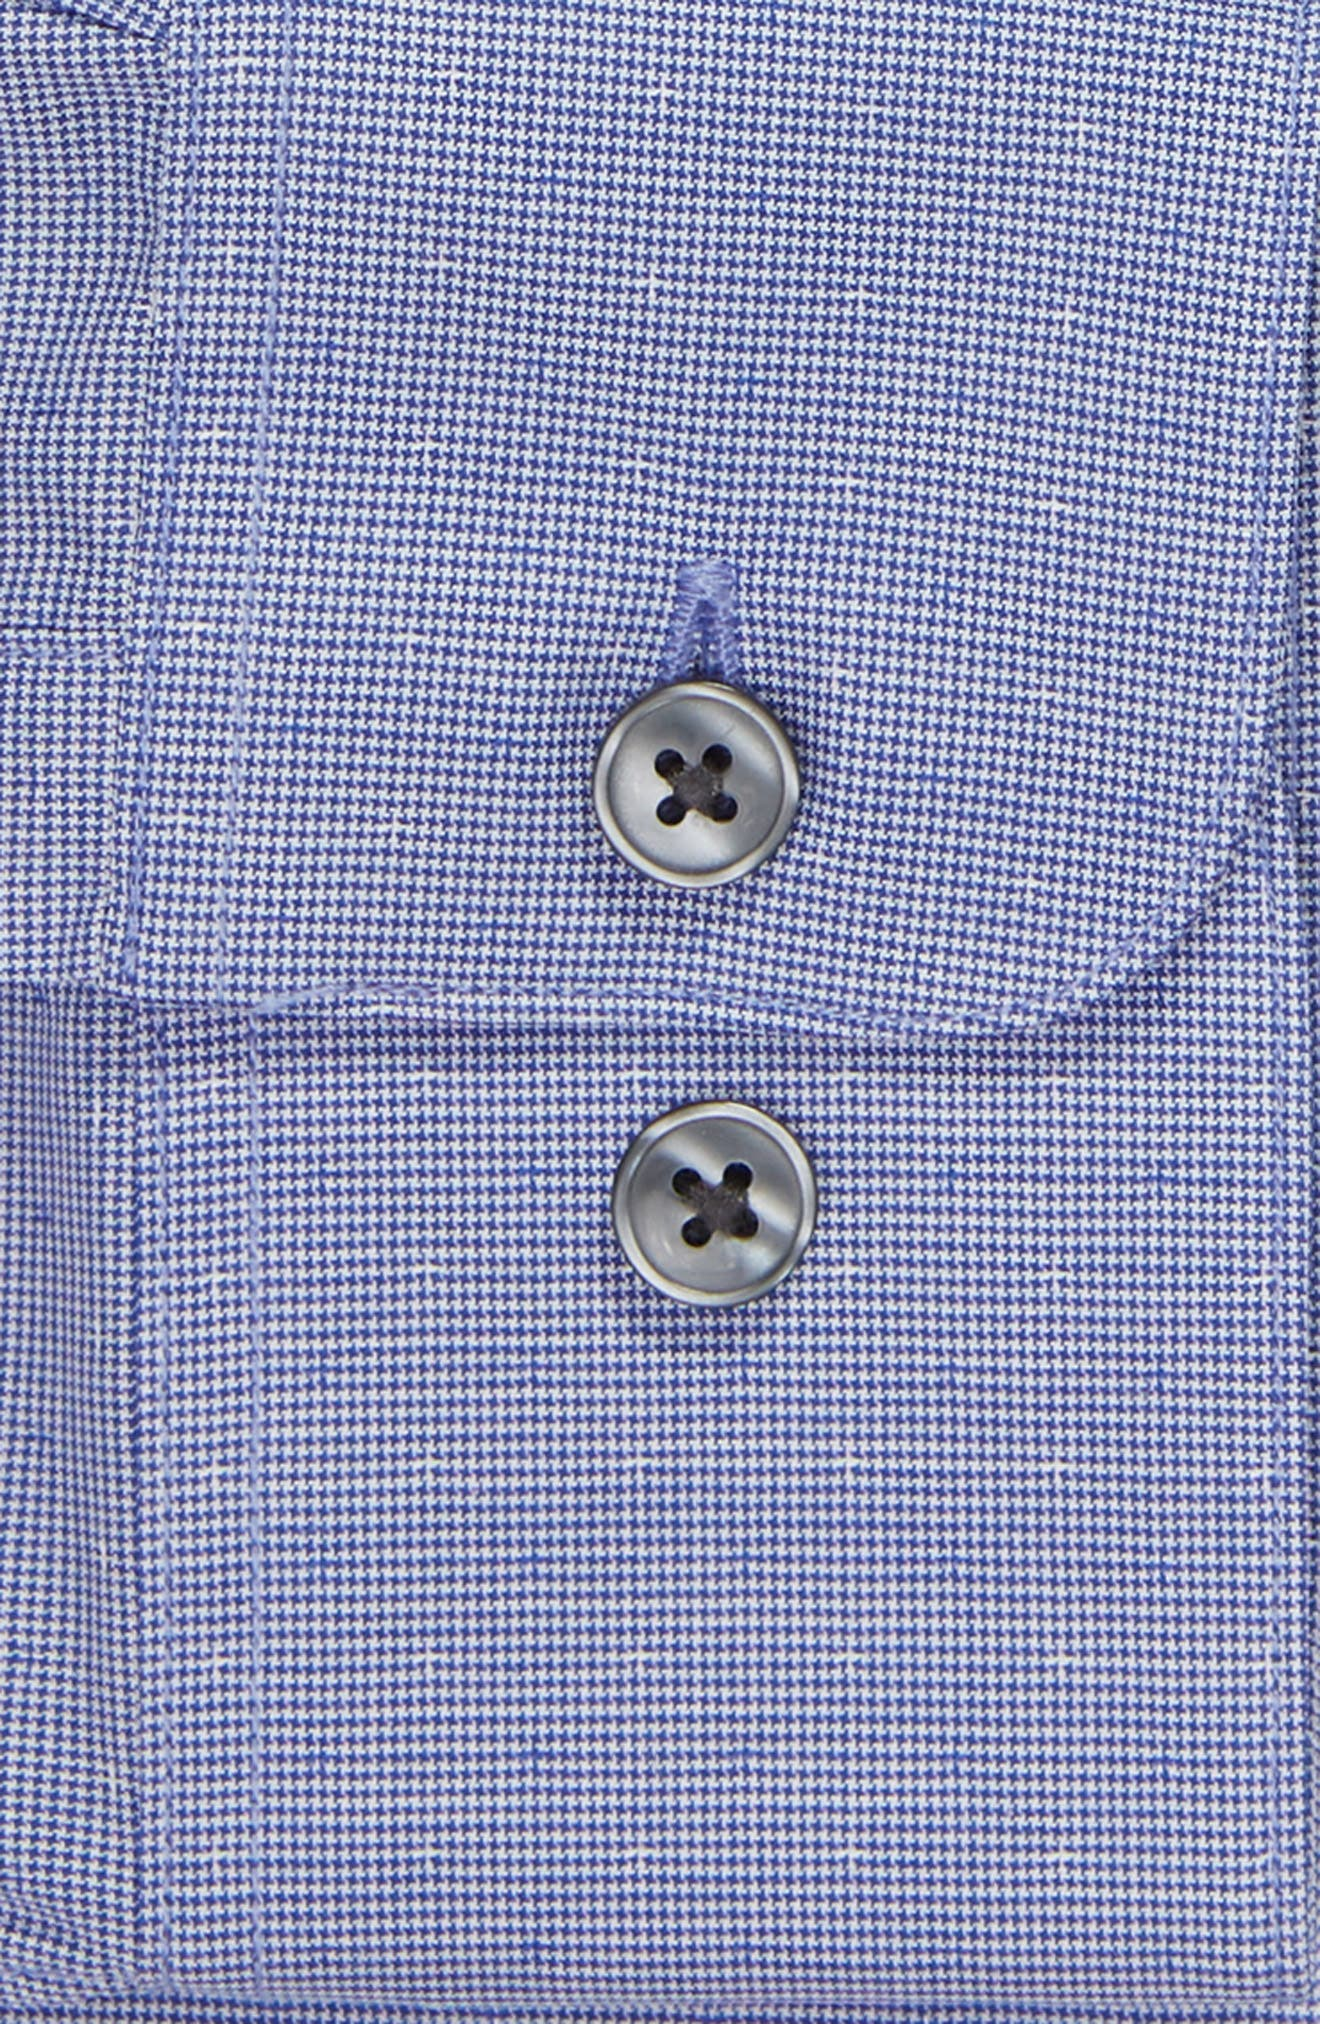 Regular Fit Stretch Houndstooth Dress Shirt,                             Alternate thumbnail 6, color,                             PACIFIC BLUE